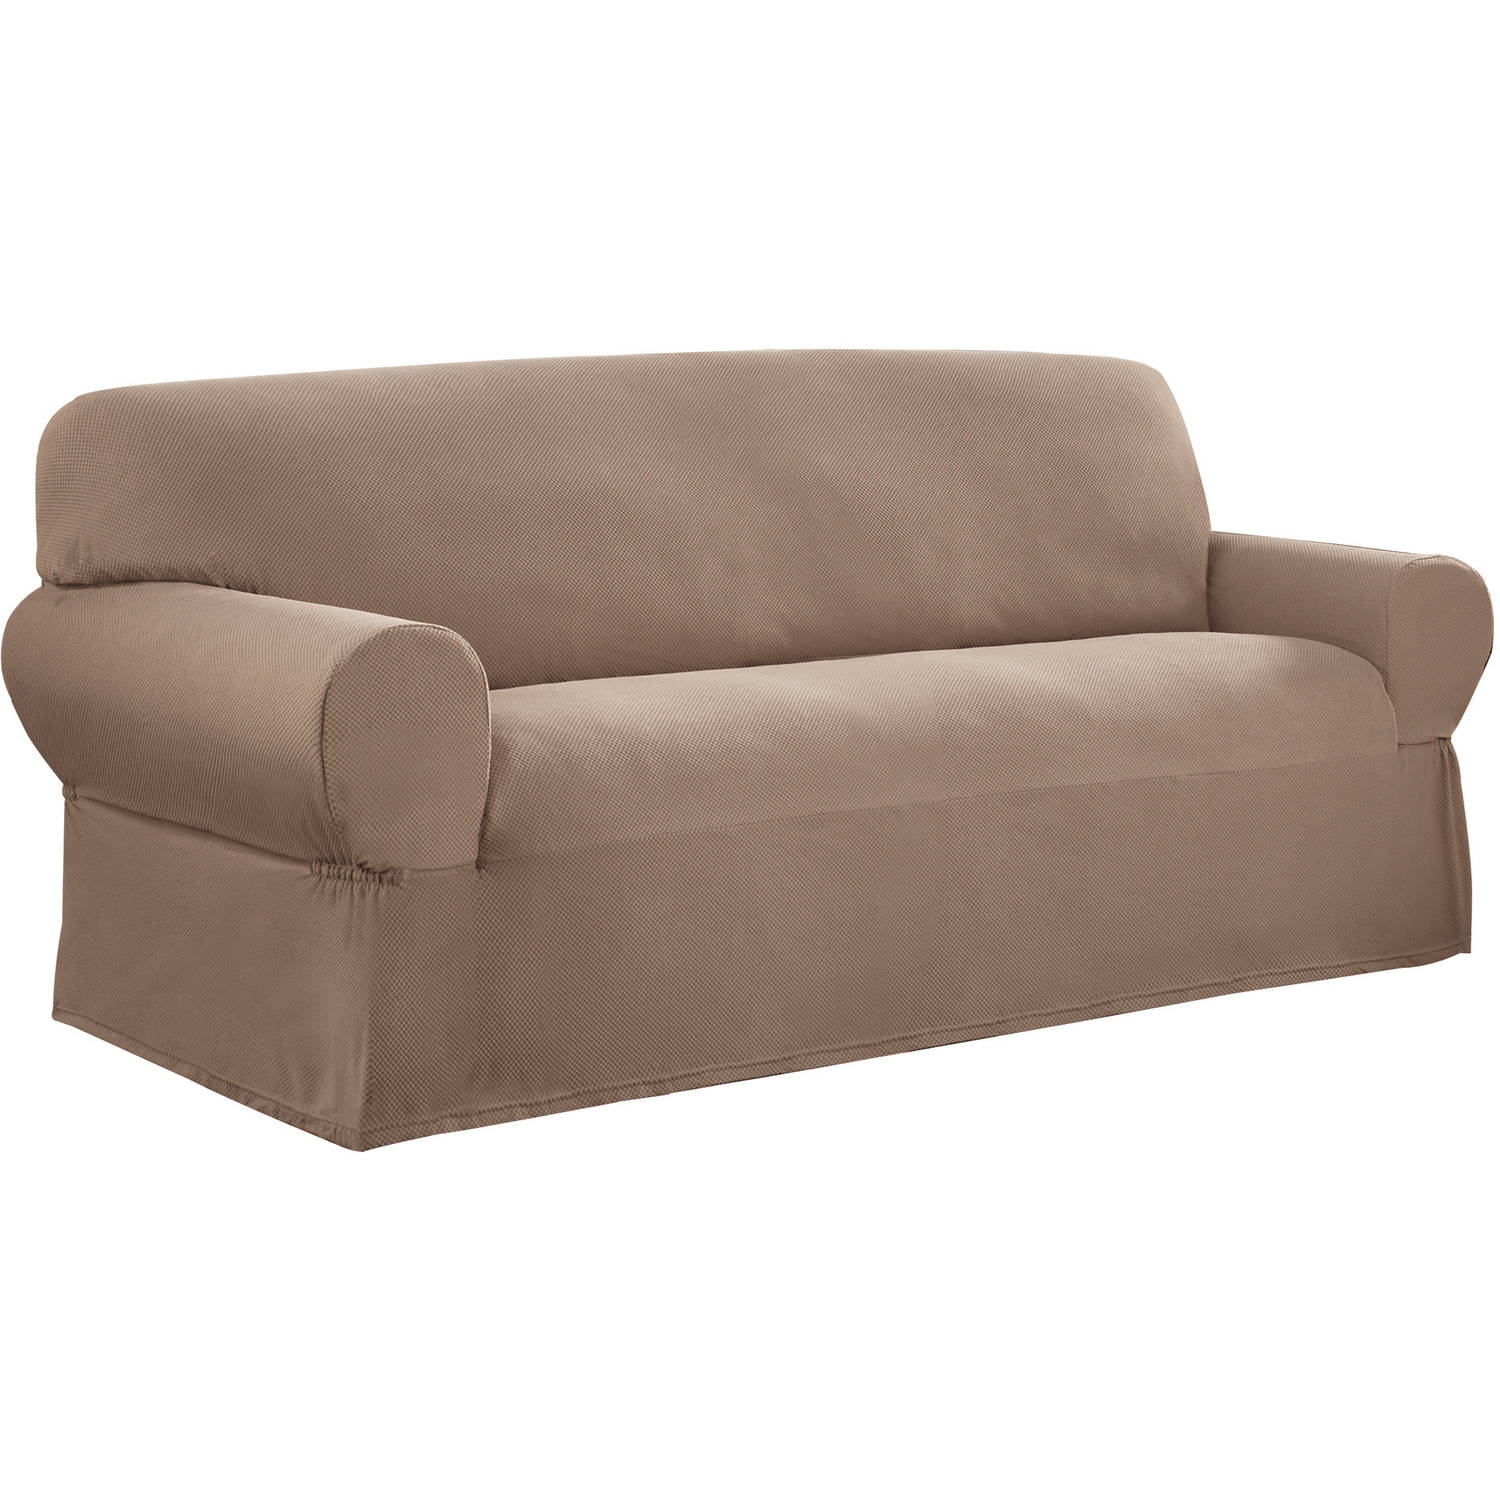 Sure Fit Scroll Brown Sofa Slipcover Walmart Com